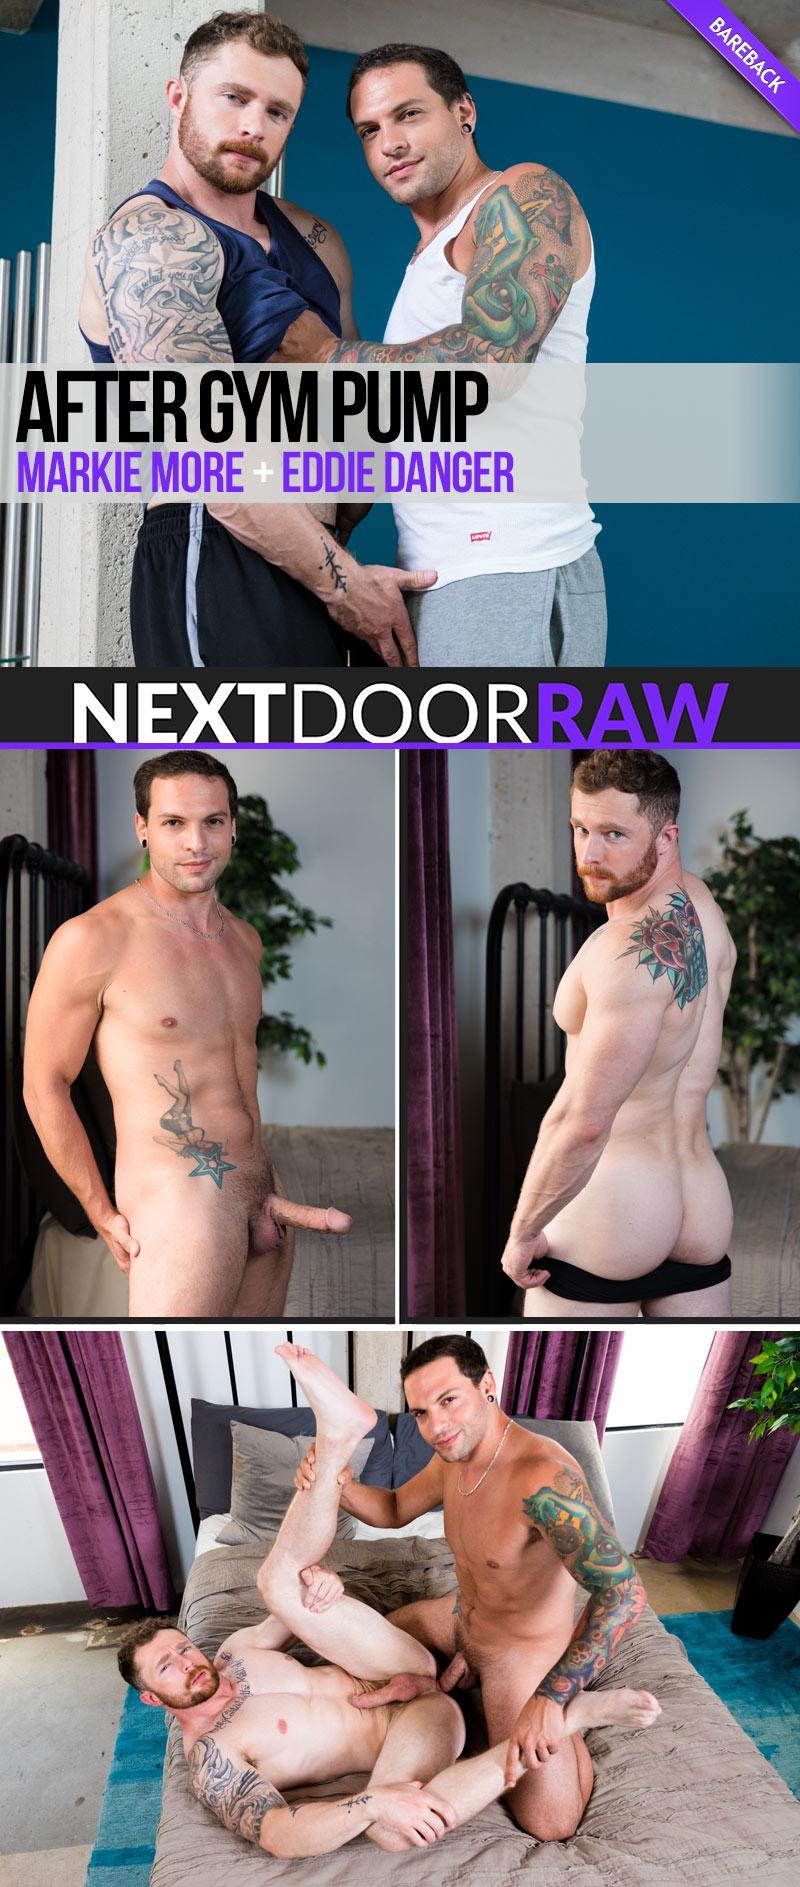 After Gym Pump (Eddie Danger Fucks Markie More) (Bareback) at NextDoorRAW!